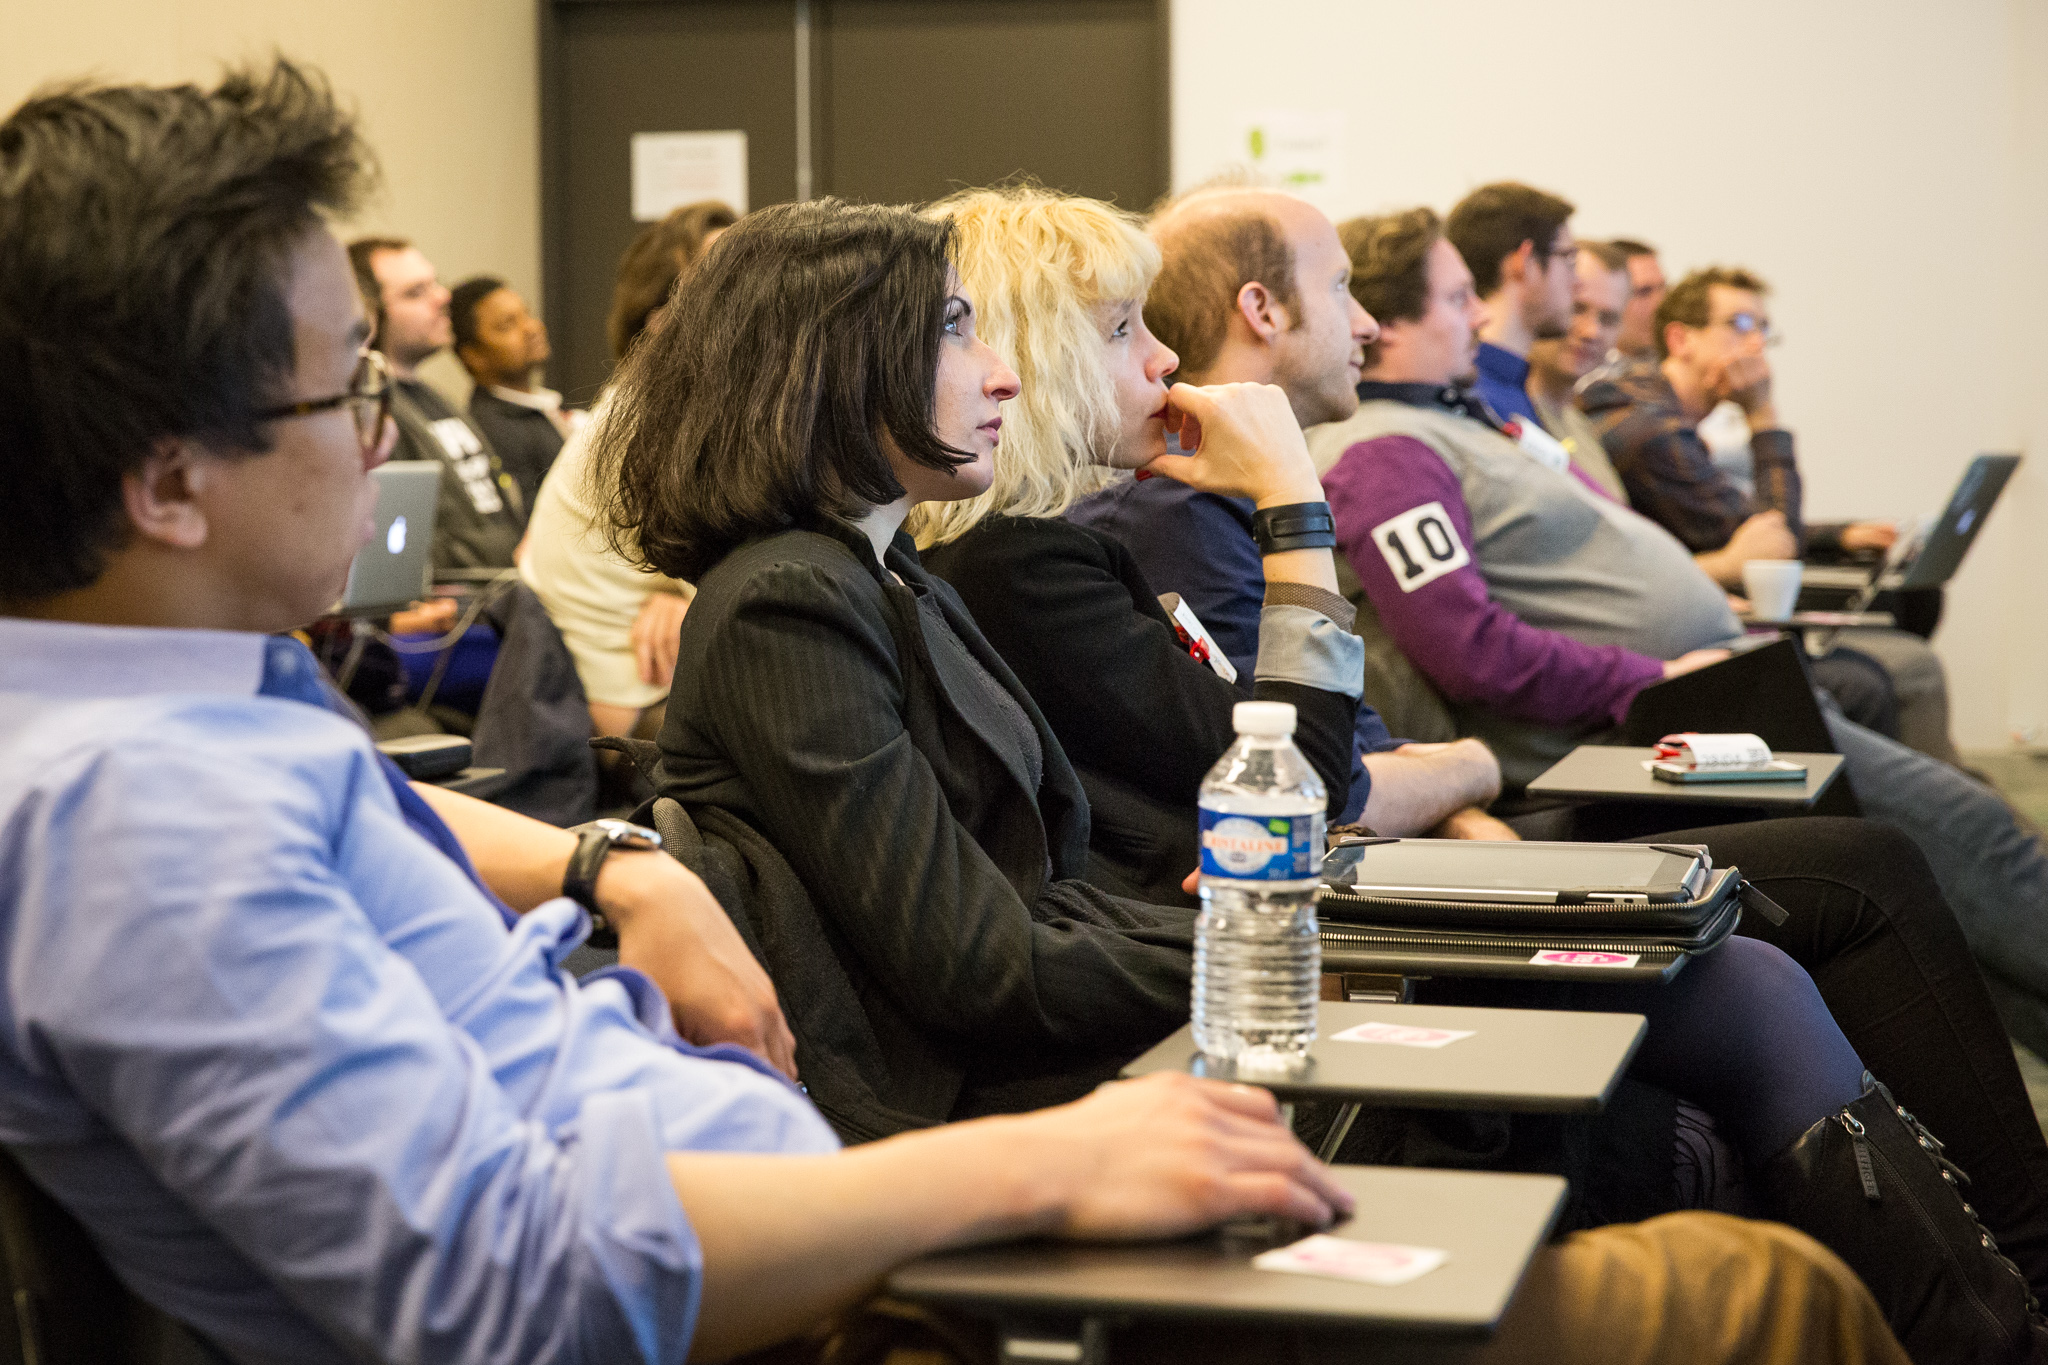 people listening to speaker at lecture